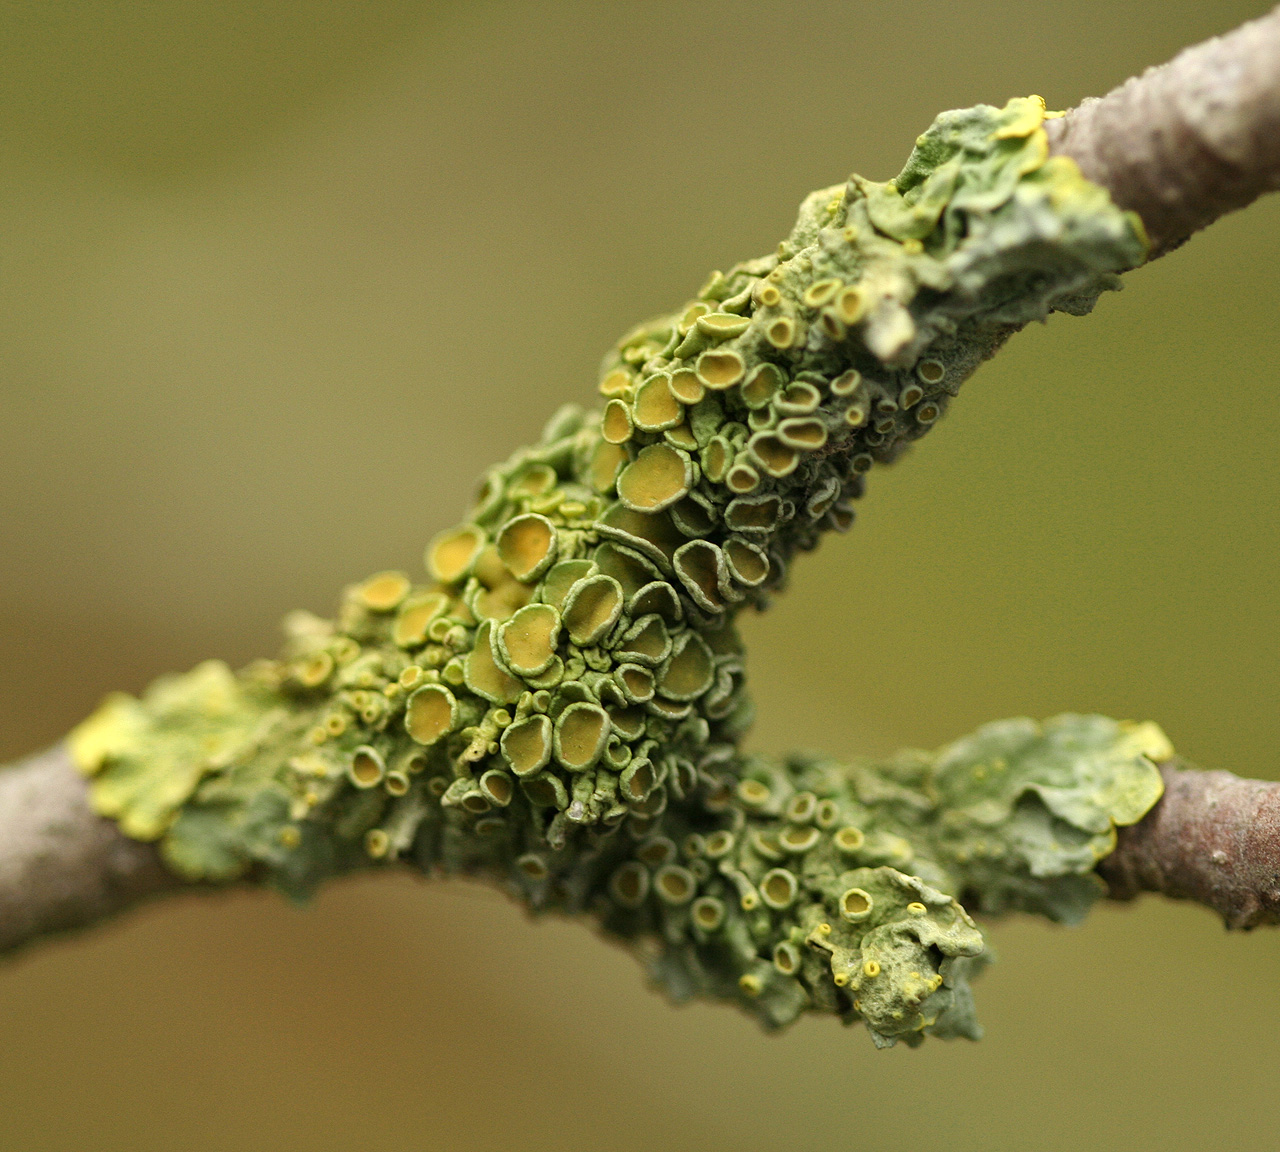 lichen and green algae relationship memes